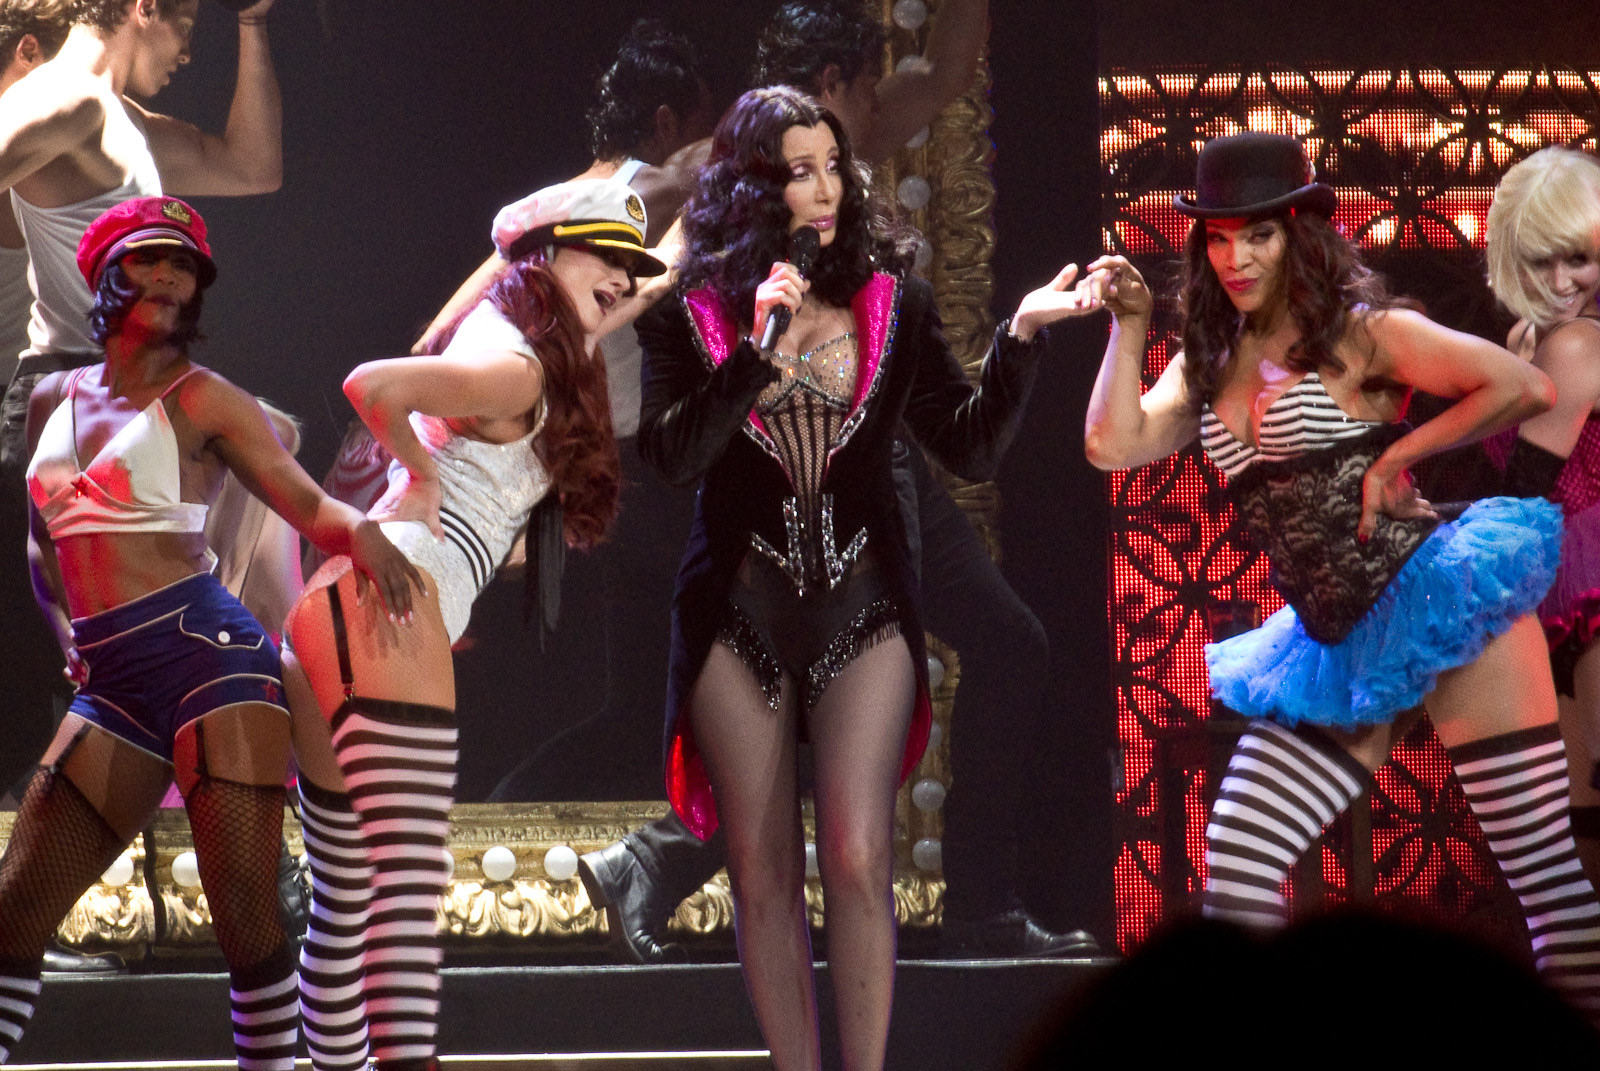 cher 2014, american singer, actress, dressed to kill concert tour, senior citizen